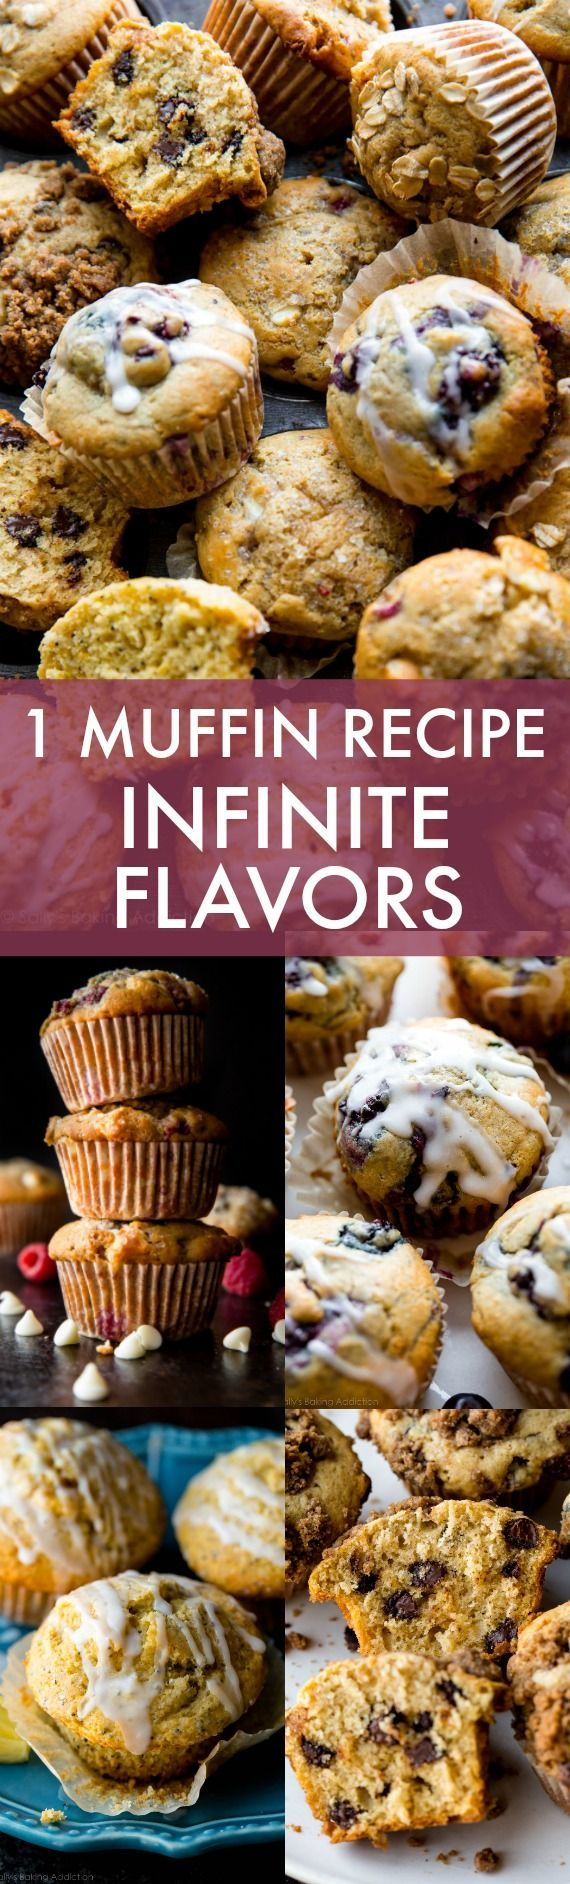 Create hundreds of muffin flavors from this 1 master muffin recipe!! Easy, straightforward, and freezer friendly! Lemon poppy seed, blueberry muffins, chocolate chip muffins, coffee cake muffins, and more on sallysbakingaddiction.com